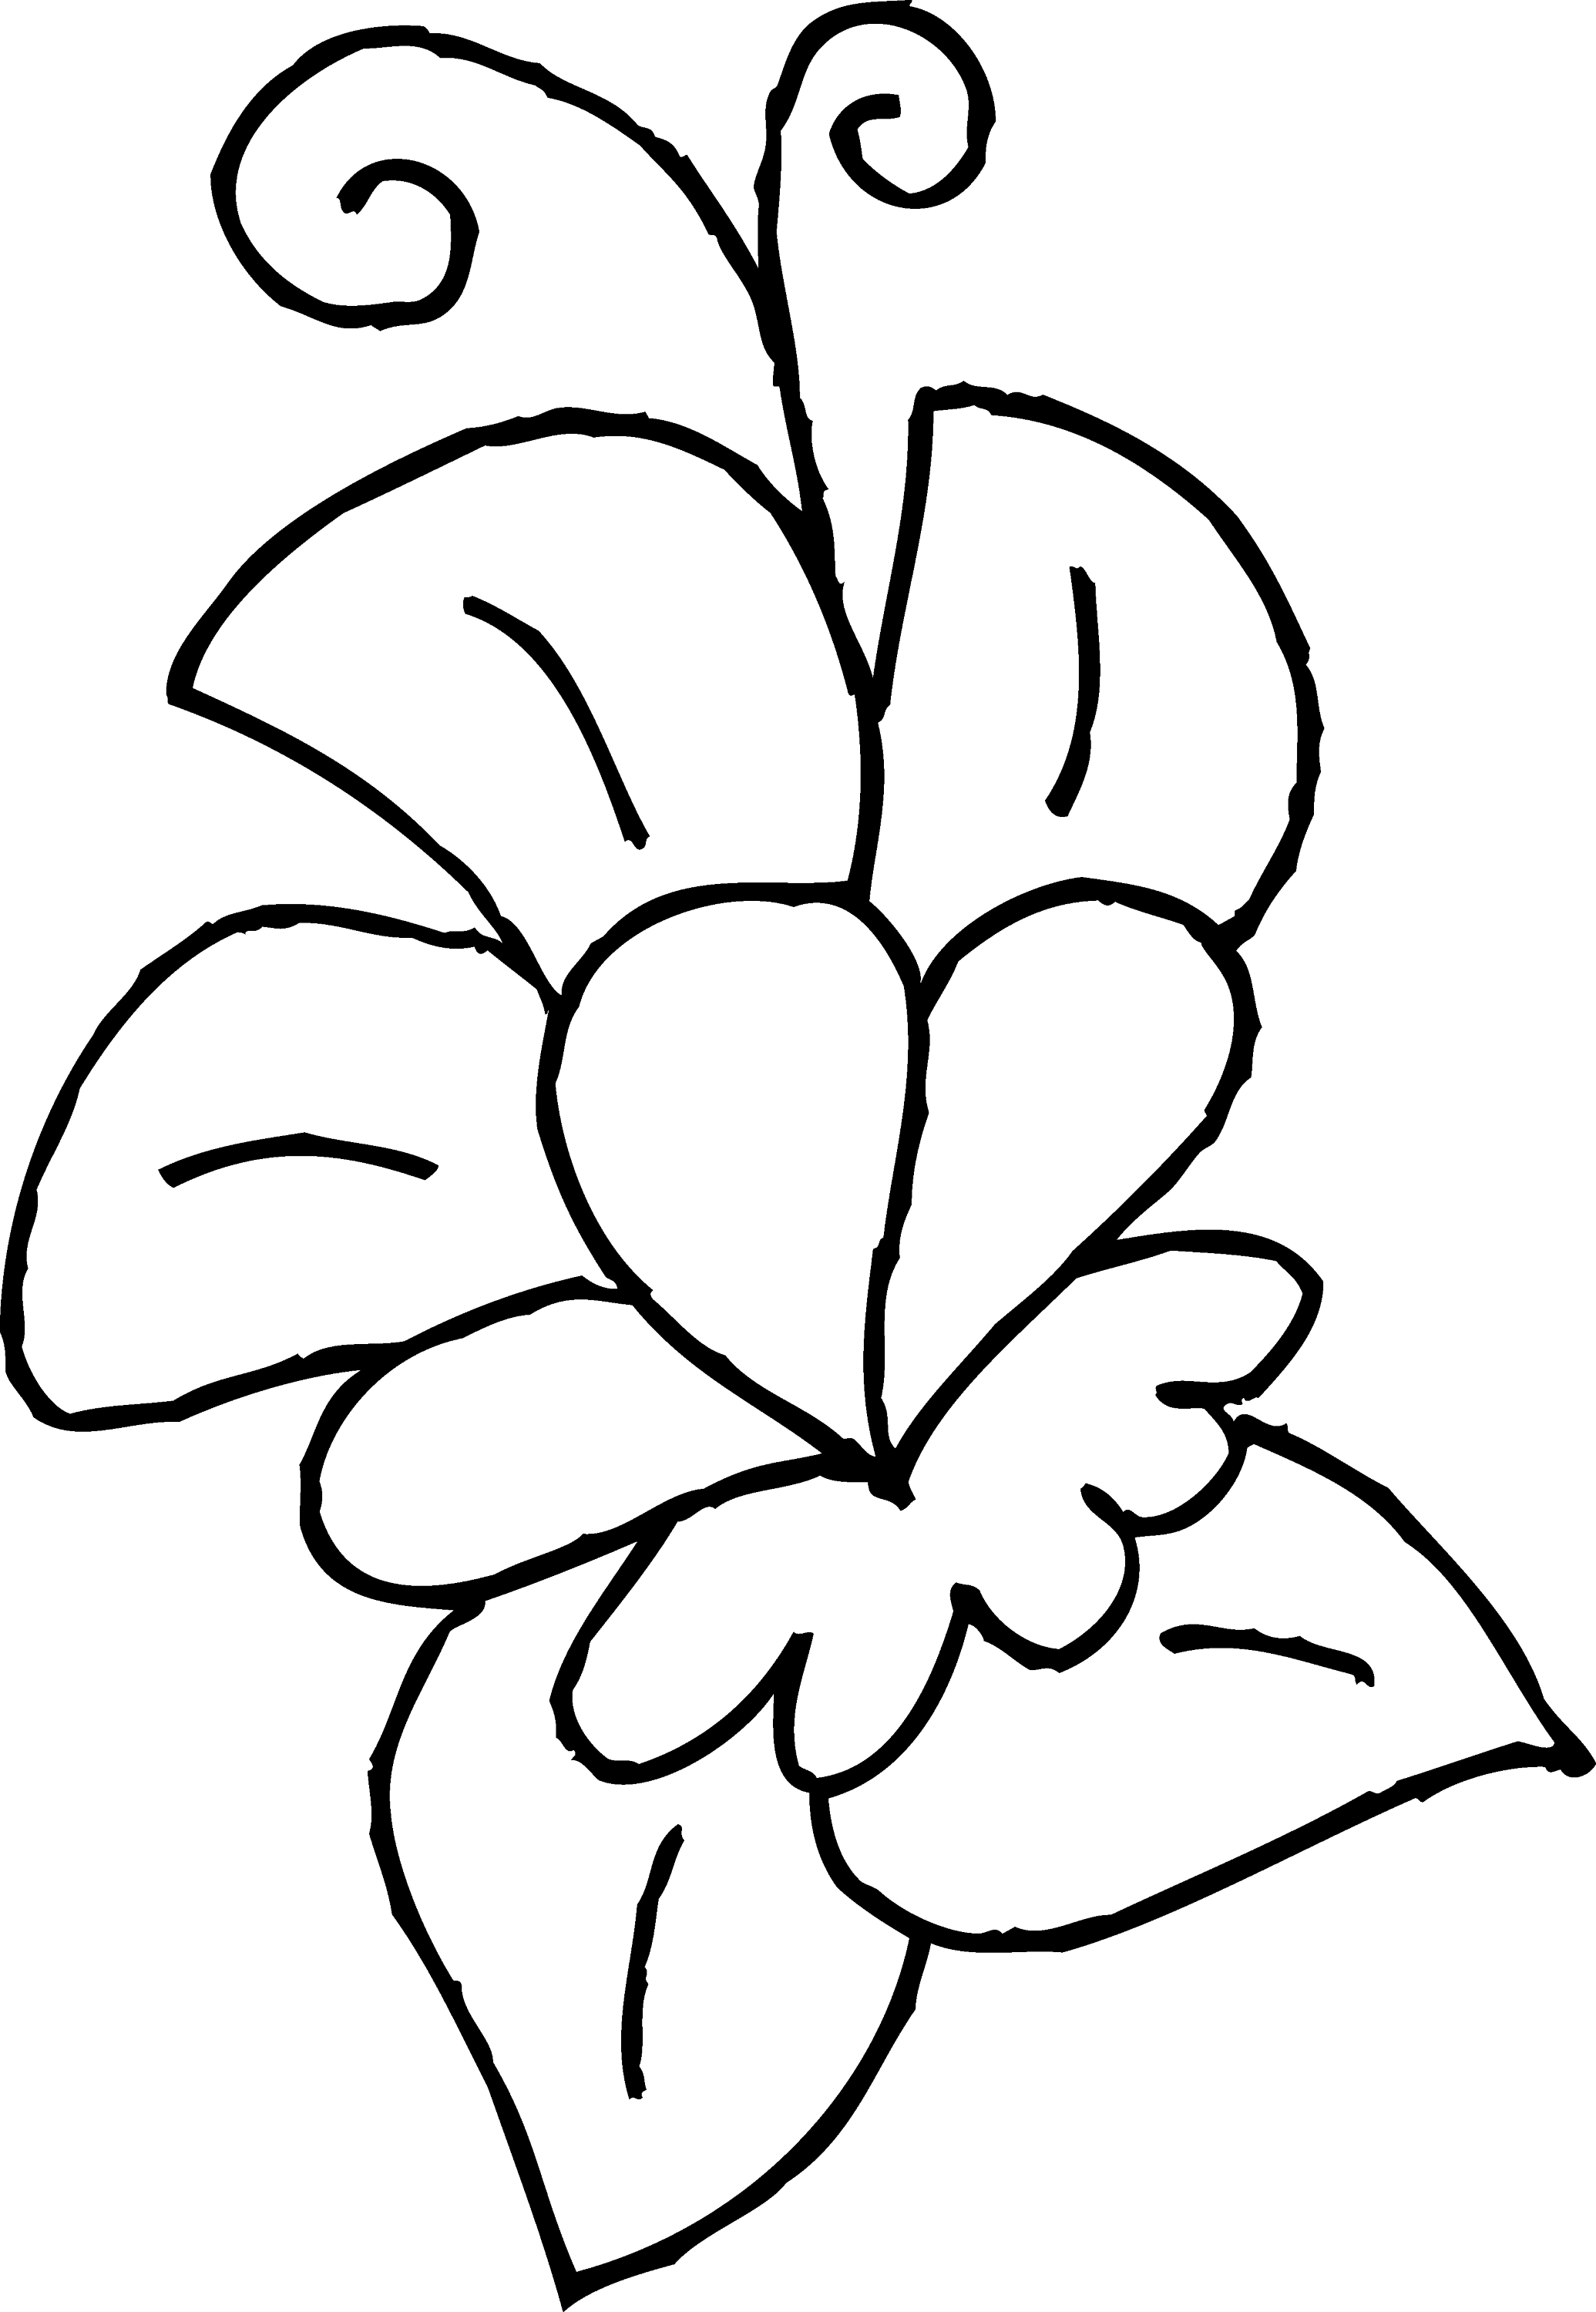 cute flower coloring pages clipart simple flower bw cute coloring pages flower